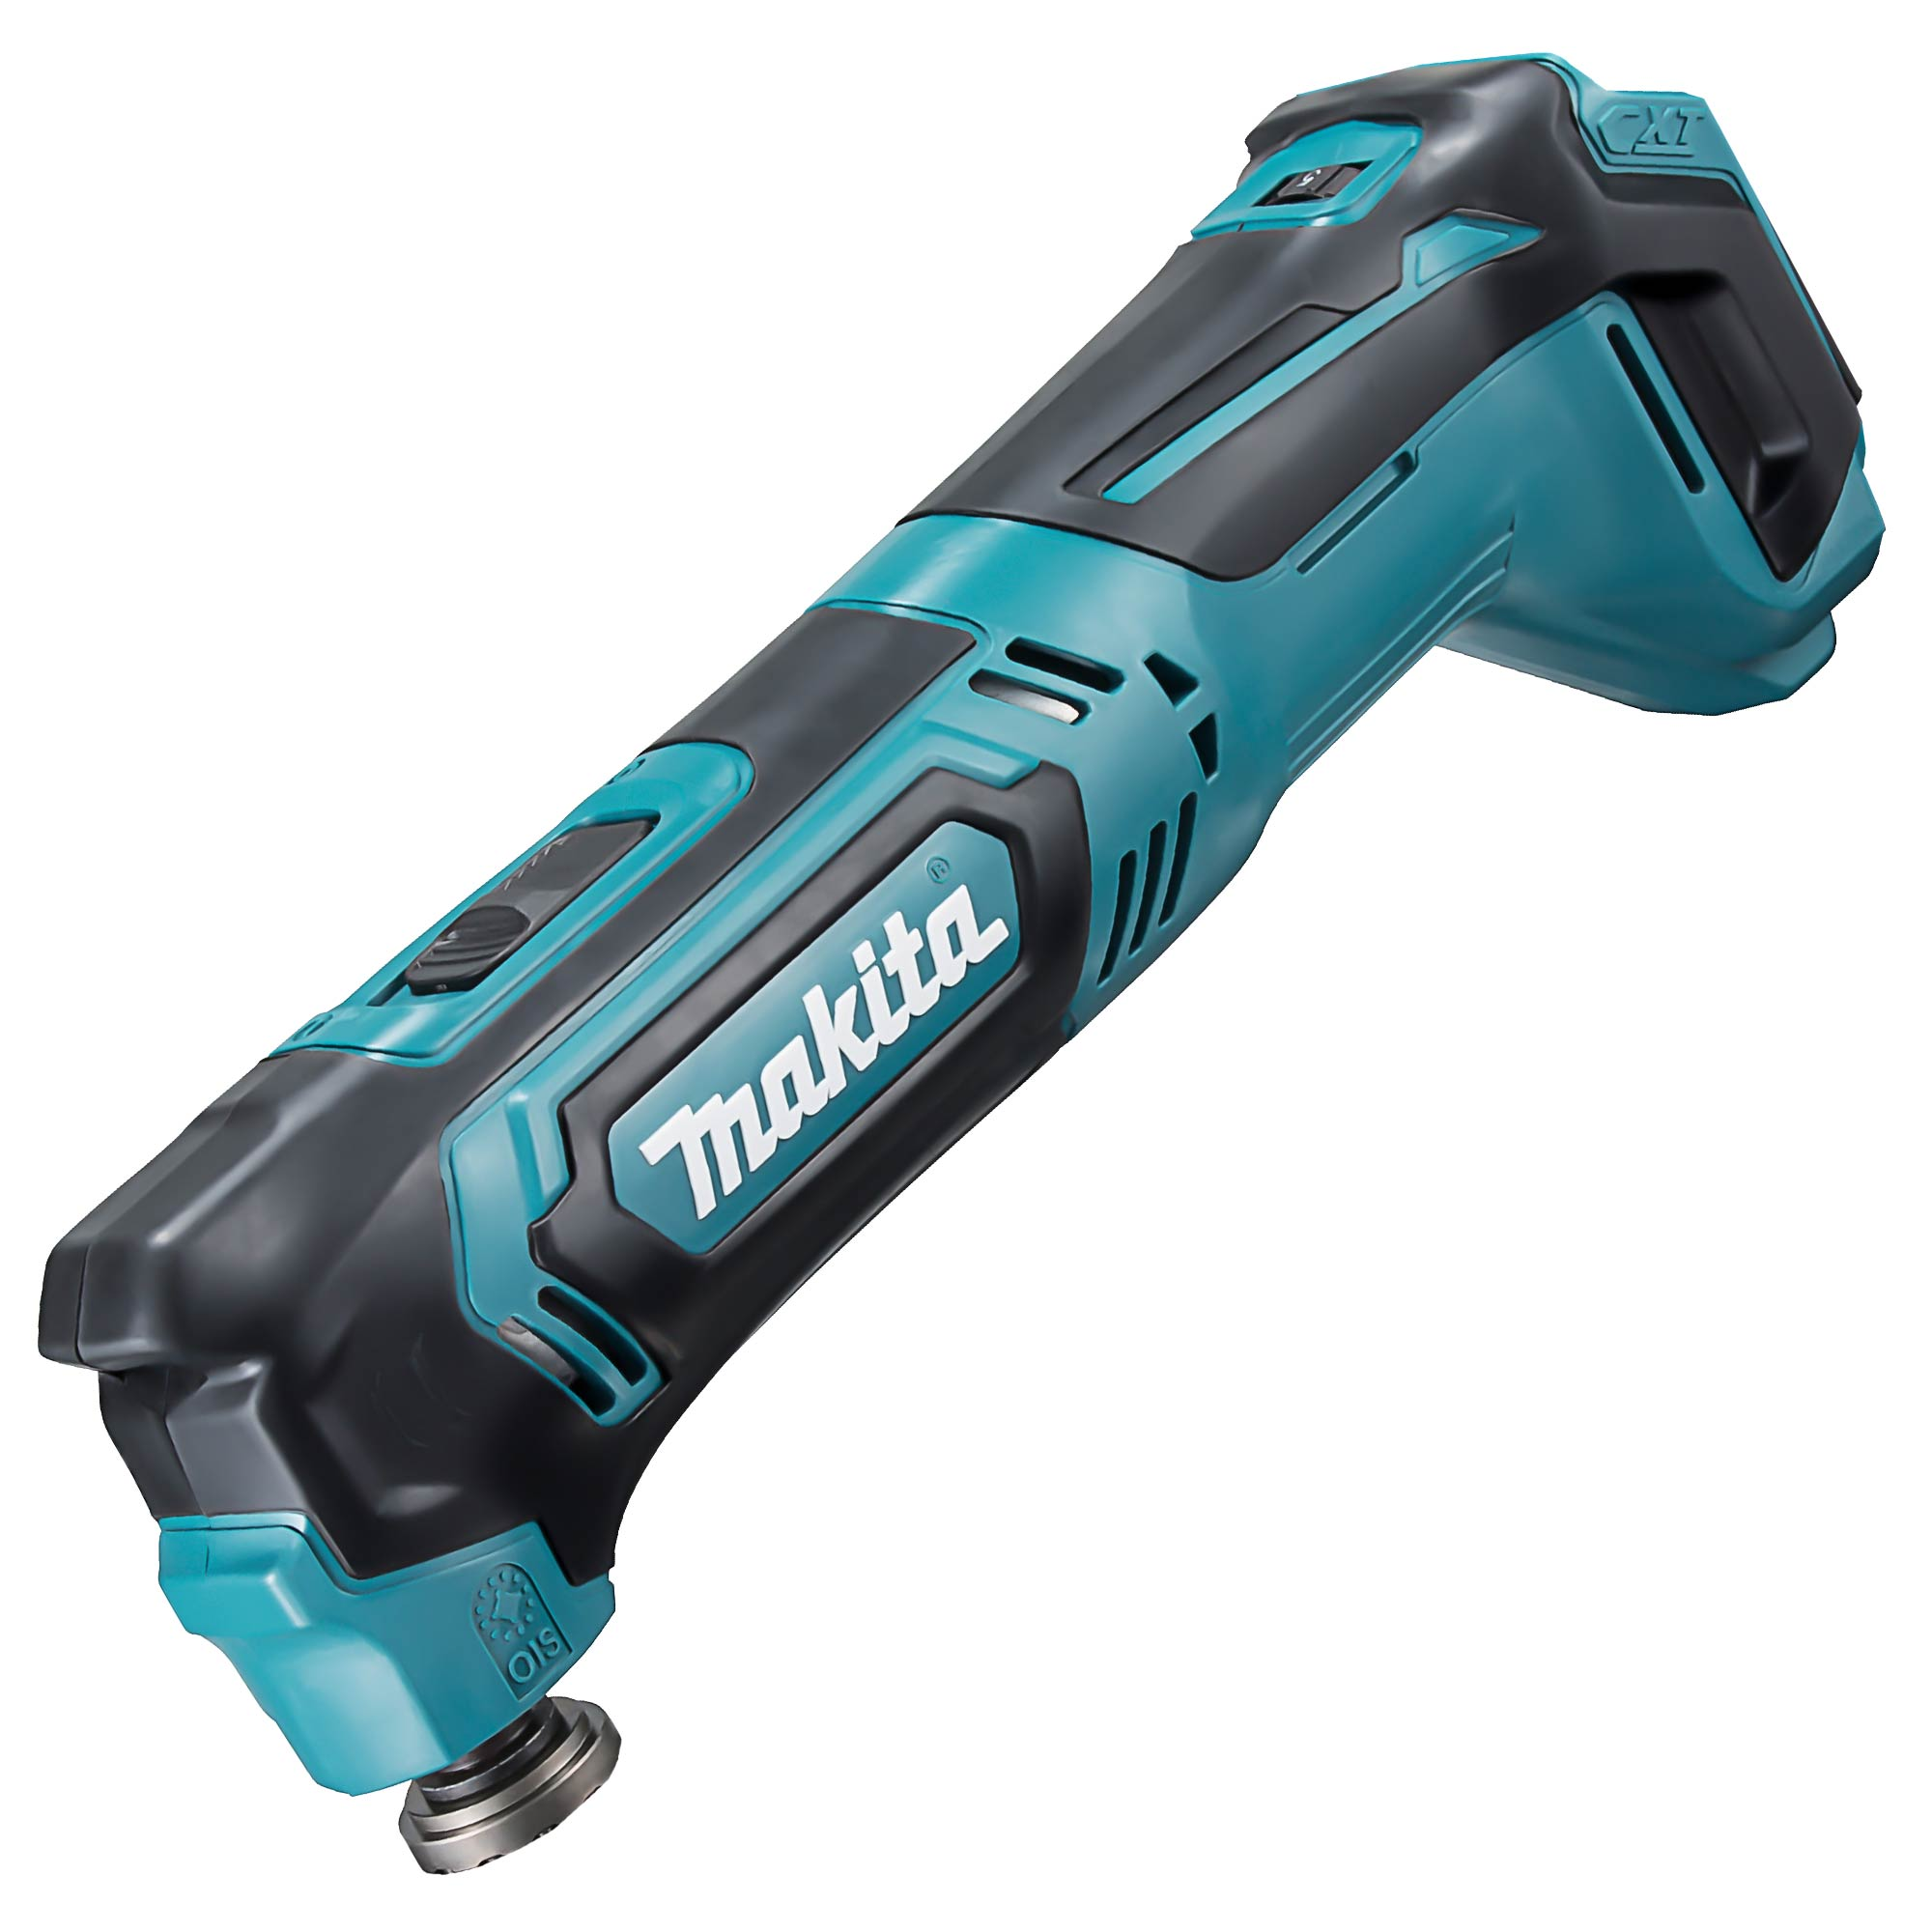 makita tm30dz li ion cordless multi tool body. Black Bedroom Furniture Sets. Home Design Ideas